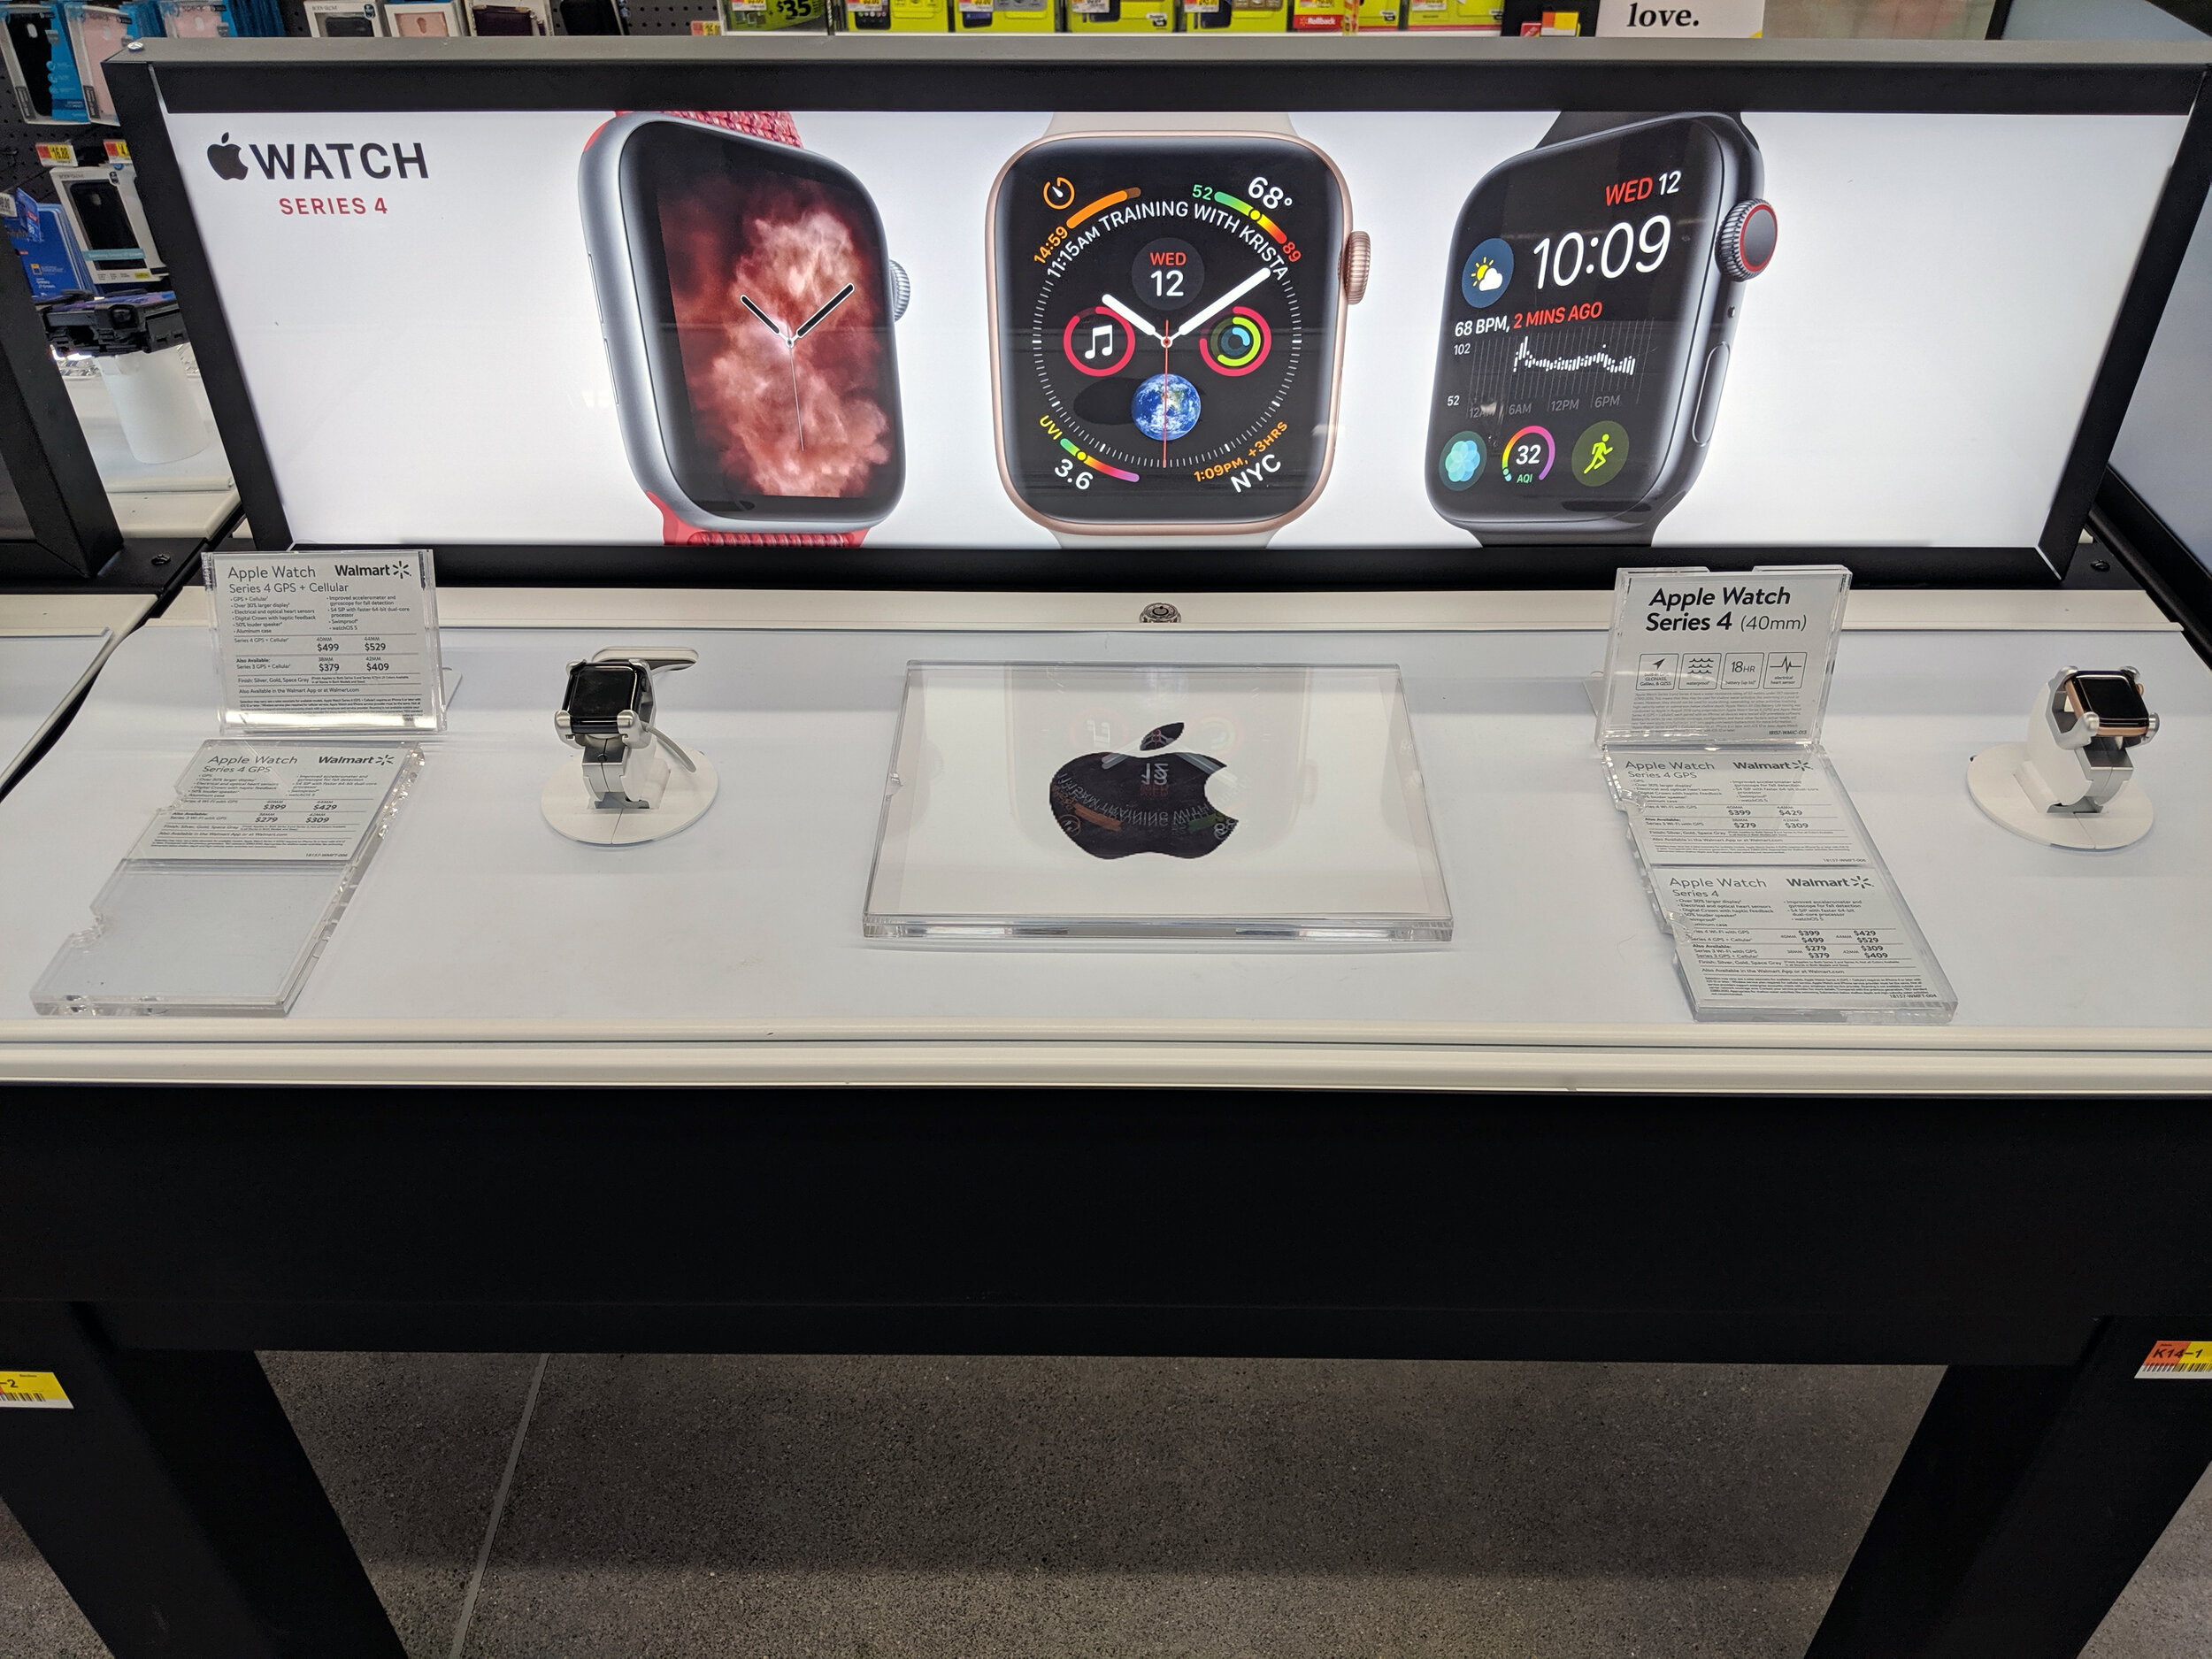 Apple Watch Display in Stores at Walmart